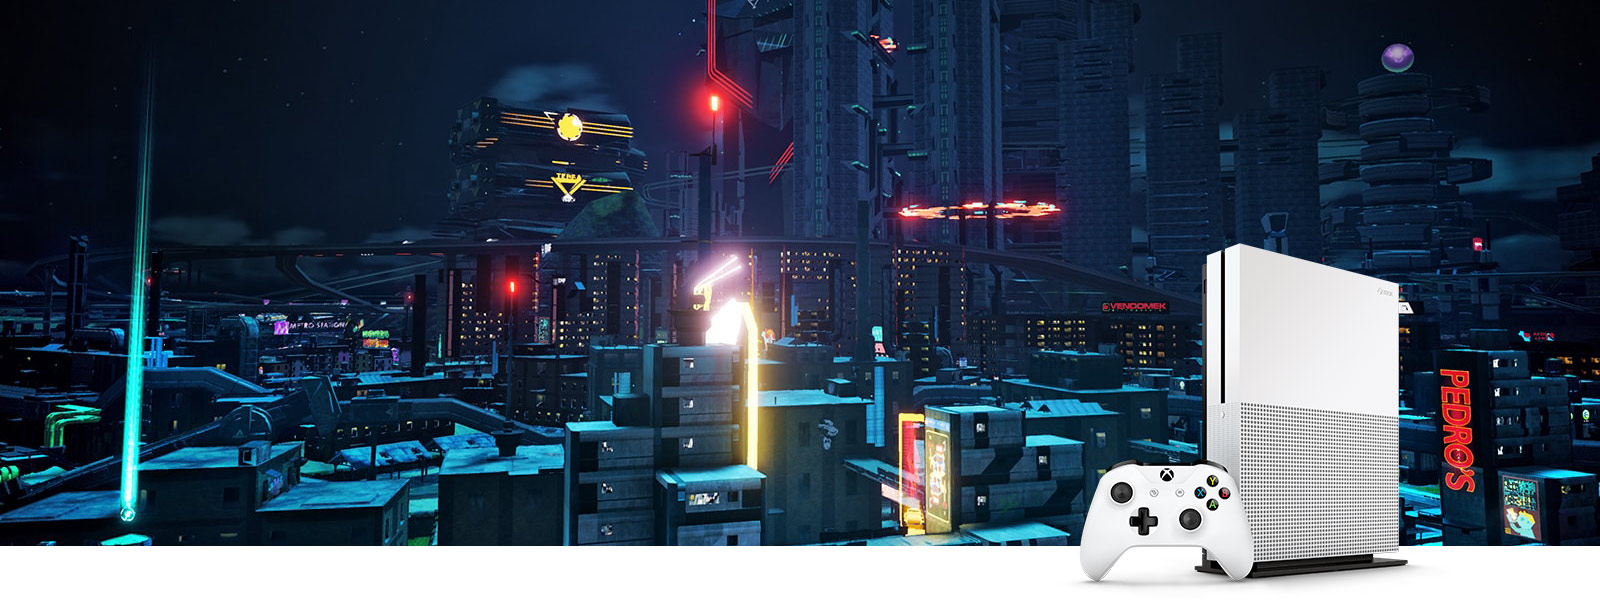 Crackdown 3 screenshot with HDR